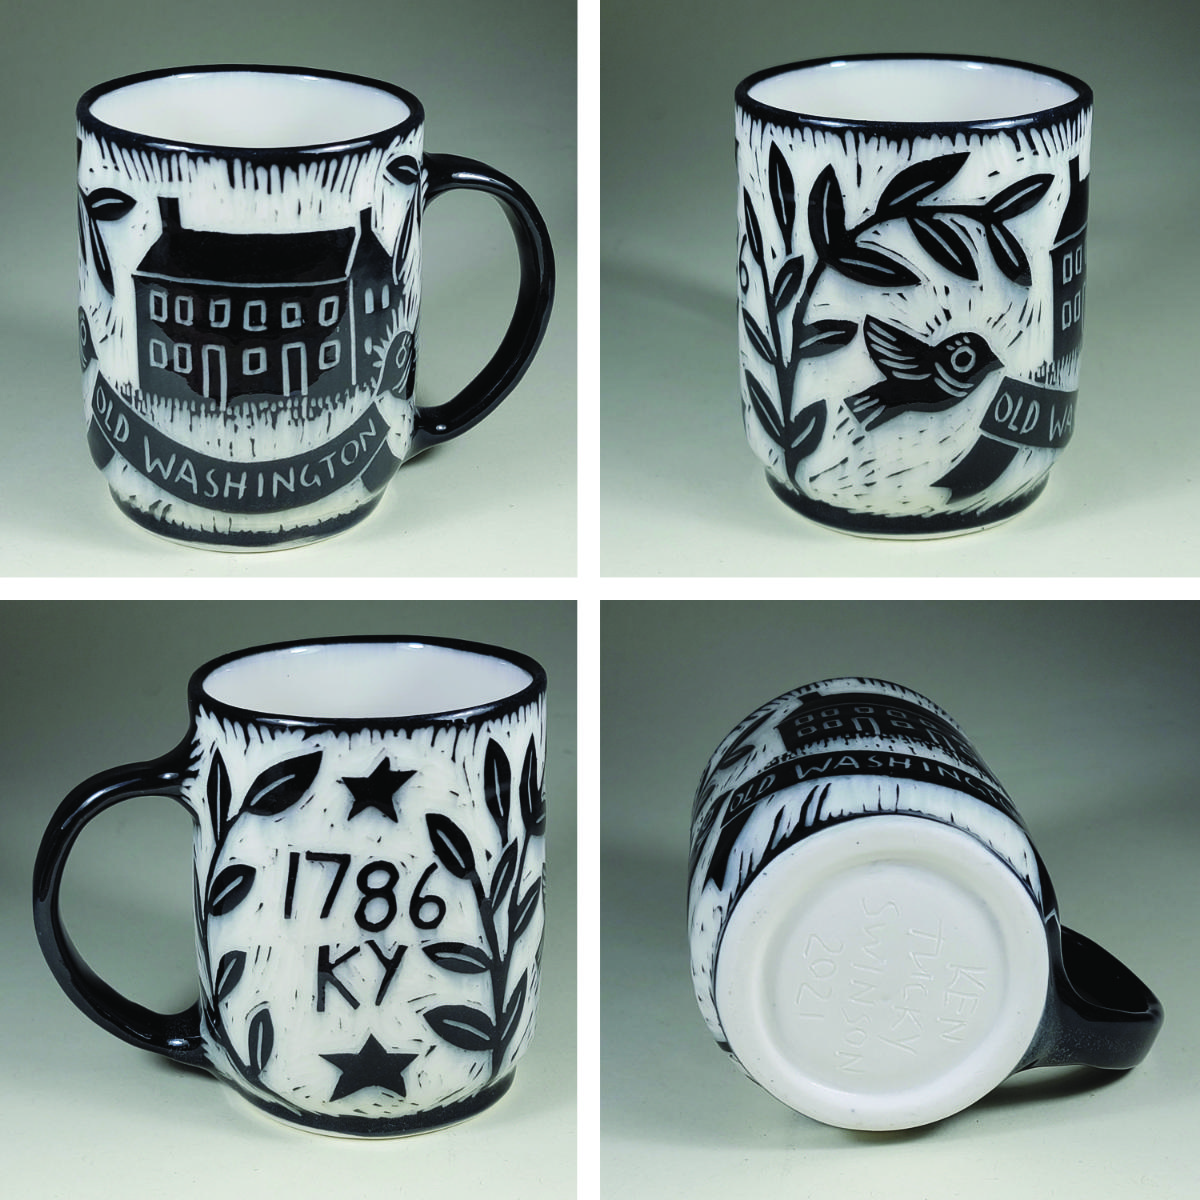 porcelain cup with black sgraffito design of washington hall, old washigton, ky 1796